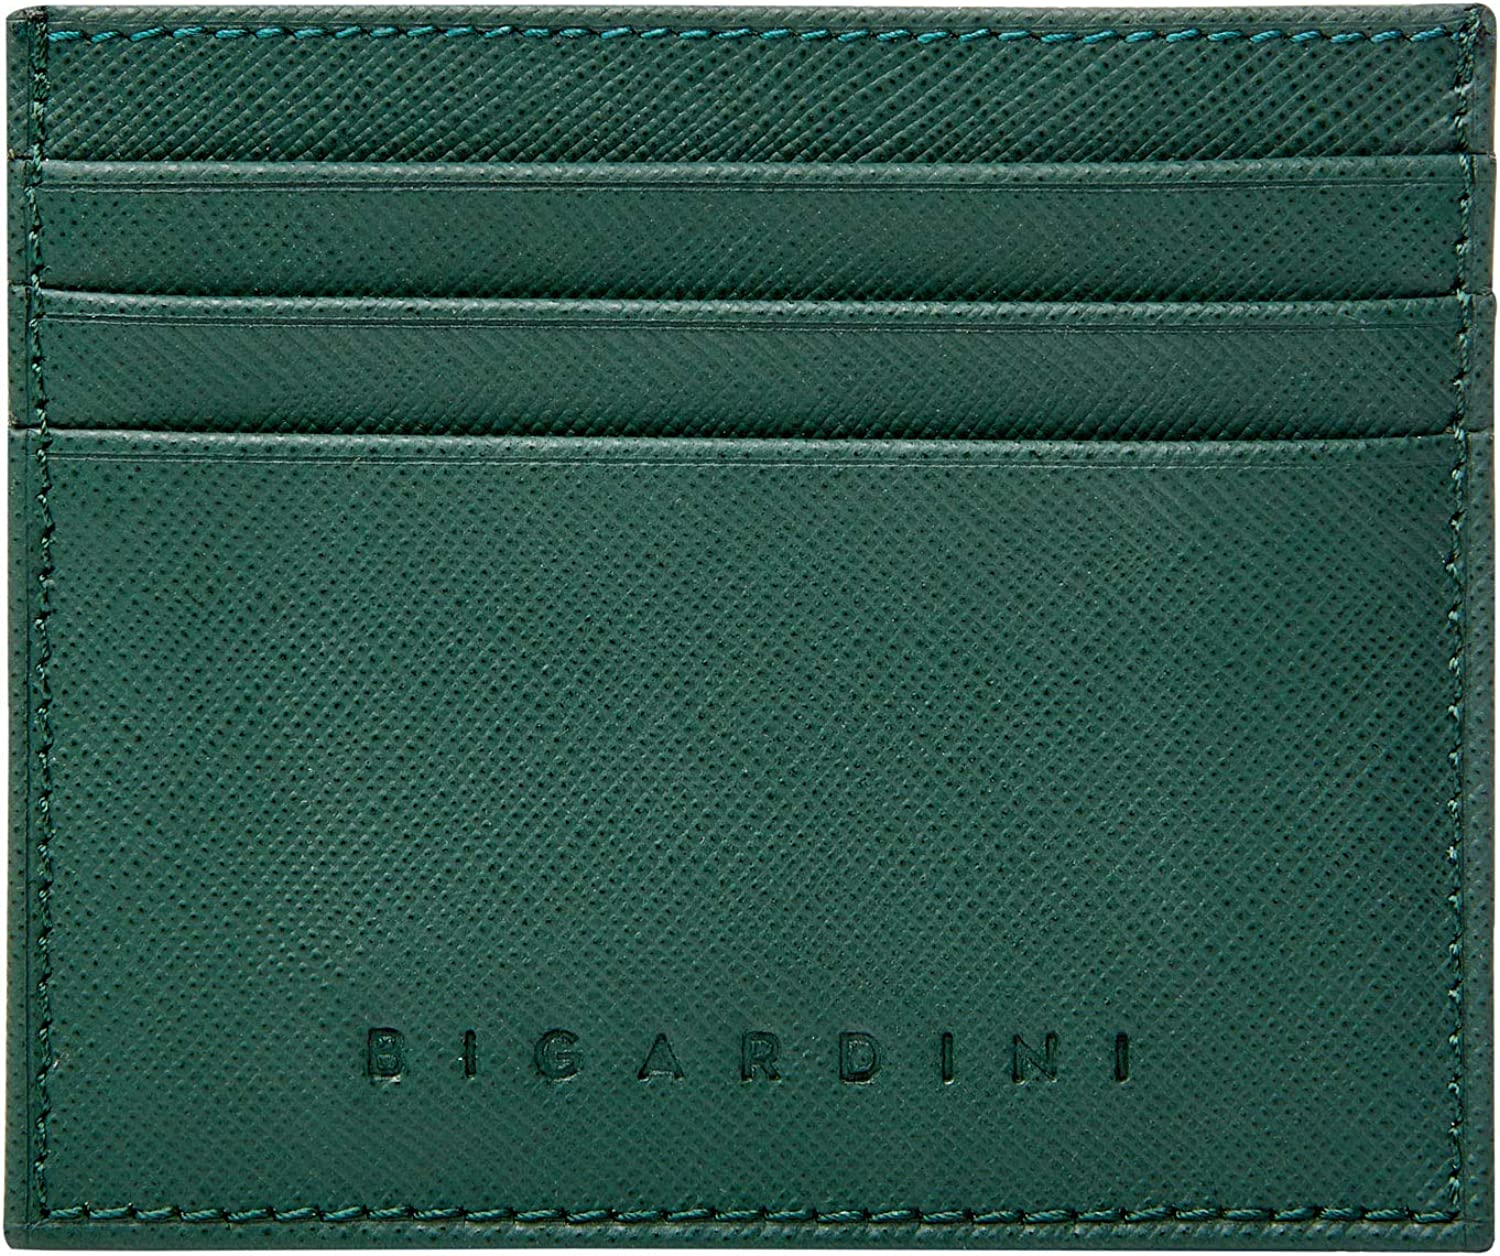 Slim Wallet Saffiano Genuine Leather Credit Card Holder Minimalist RFID Credit Card Case for Men and Women by Bigardini